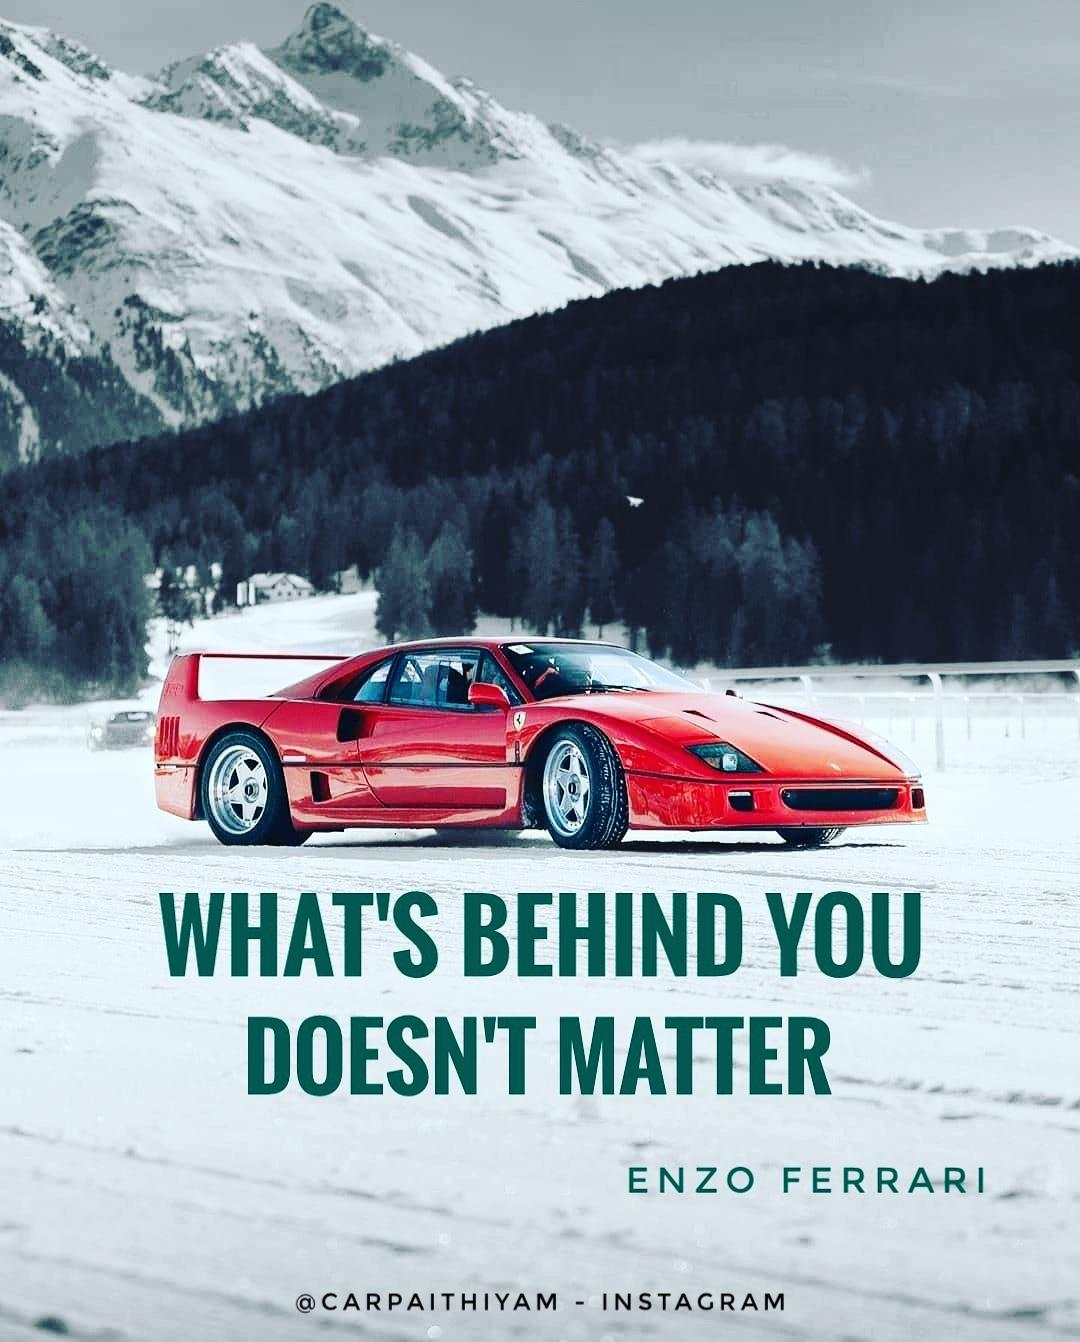 [Image]Focusing on your which is in front of you is all that matters.